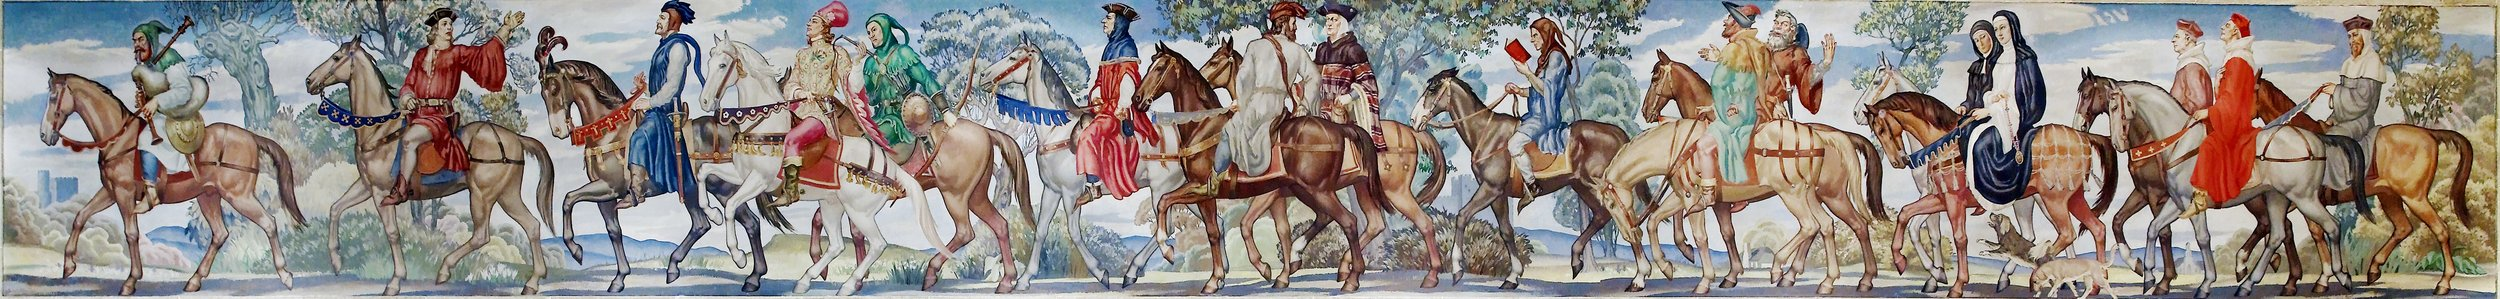 Canterbury tales mural by Ezra Winter. North Reading Room, west wall, Library of Congress John Adams Building, Washington, D.C.